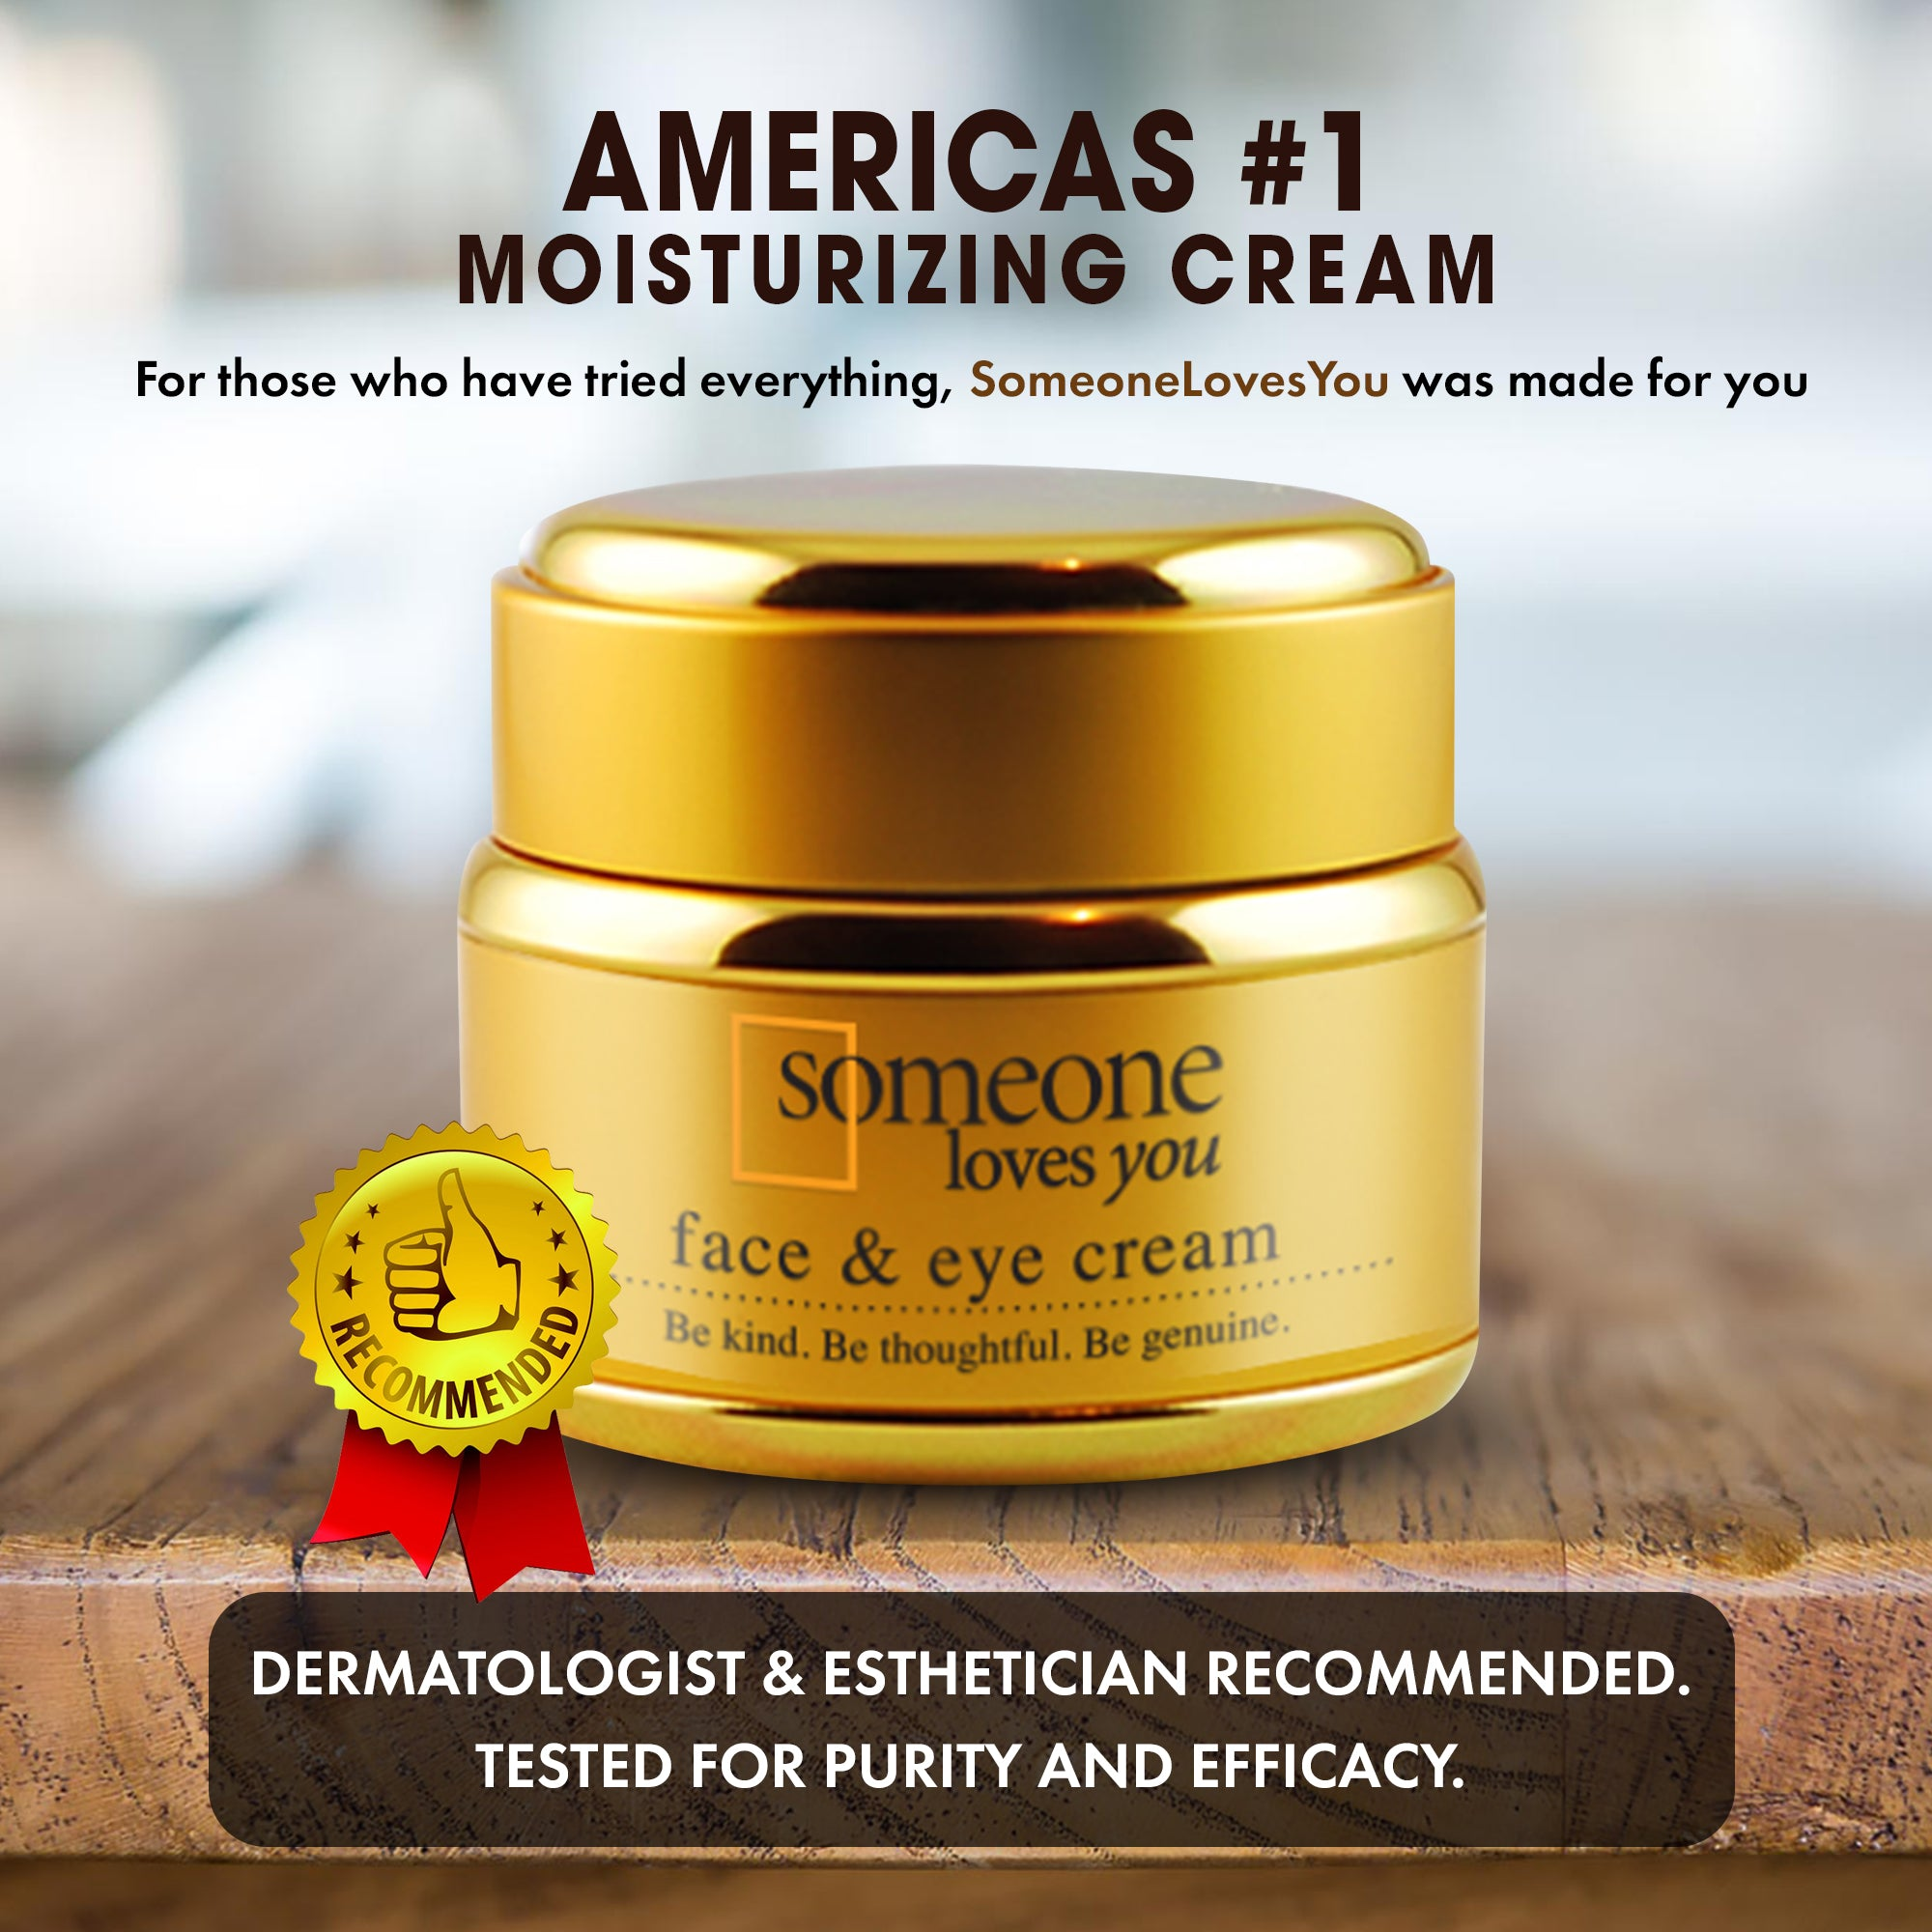 Most popular moisturizer: Smooth over your entire face and body